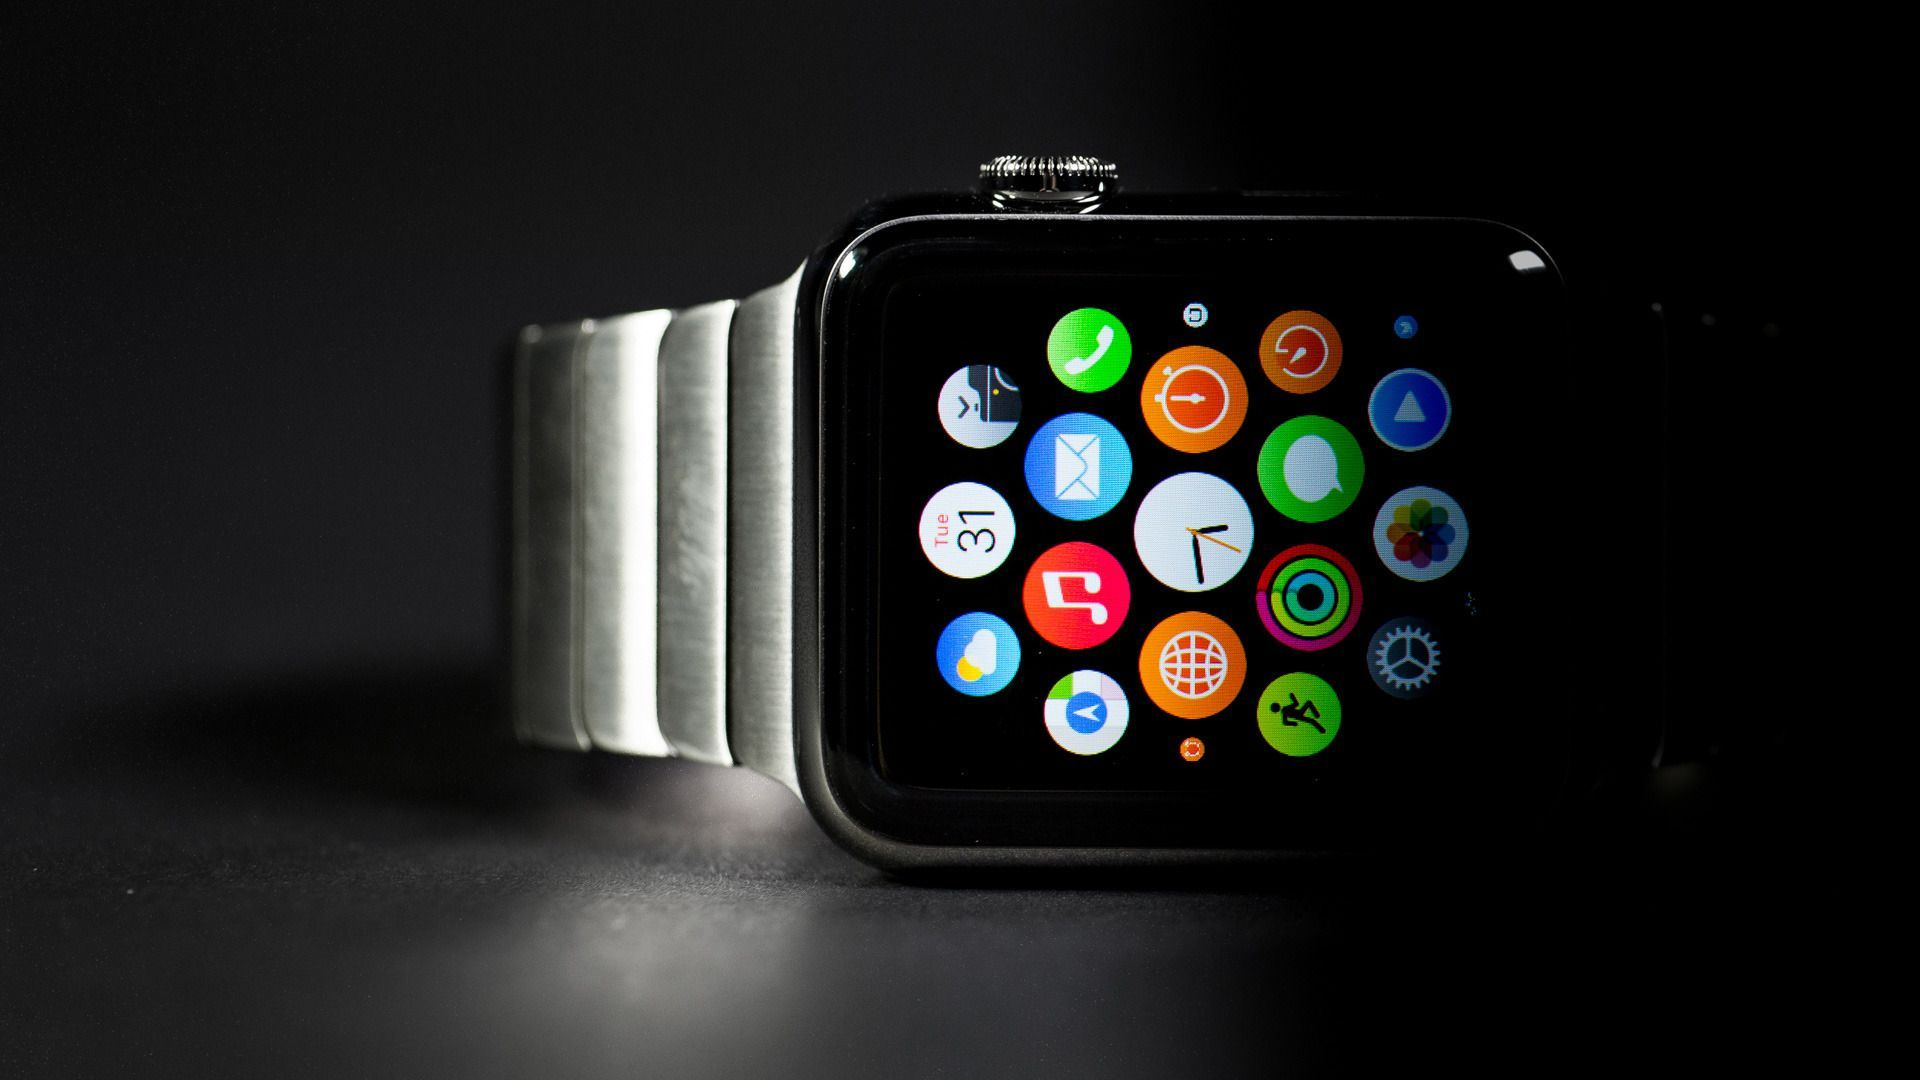 Smartwatch picture hd